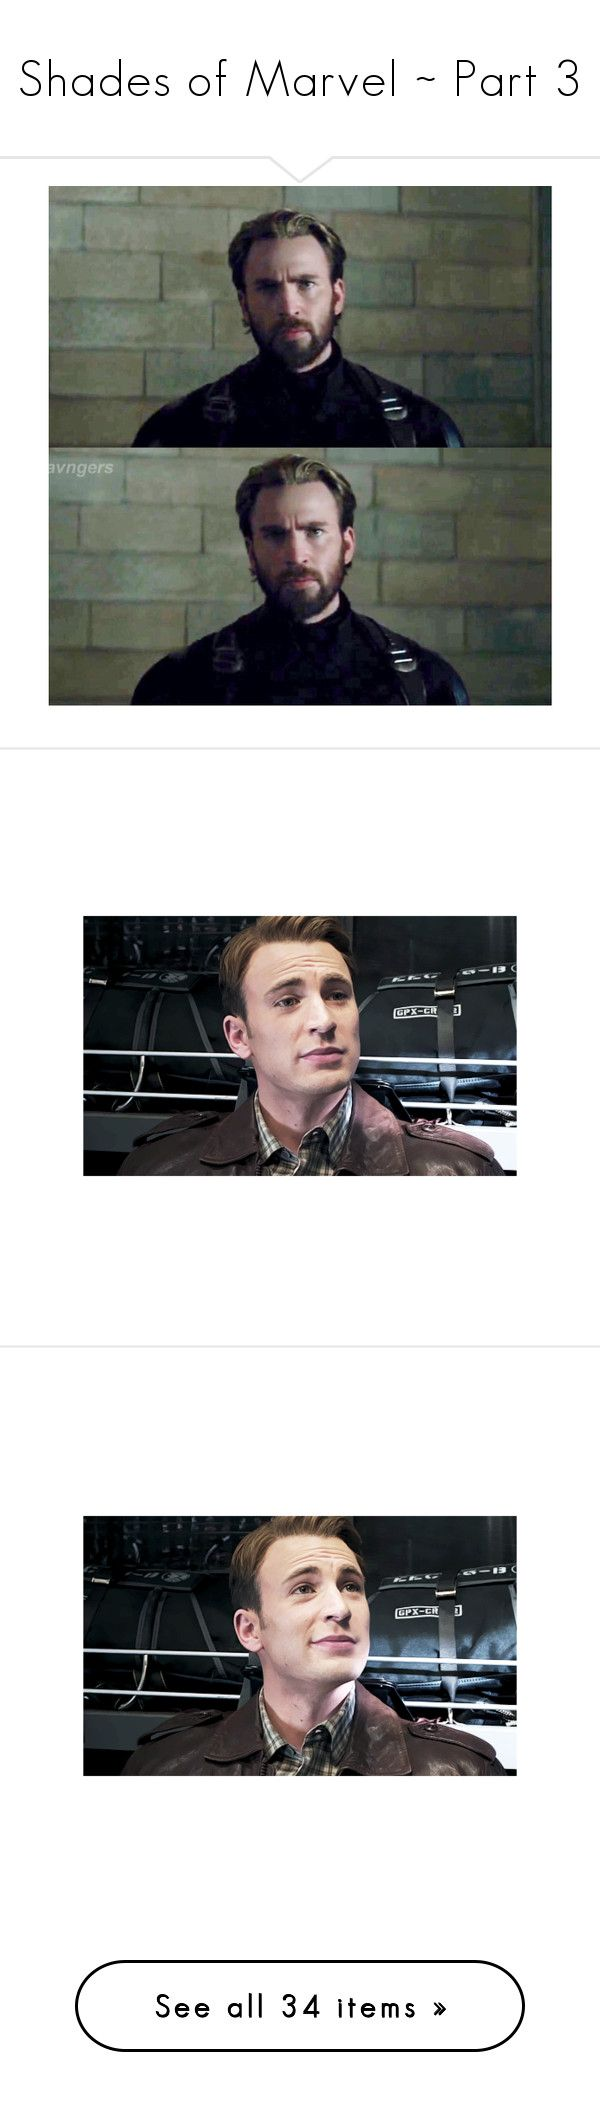 """Shades of Marvel ~ Part 3"" by t0-the-stars ❤ liked on Polyvore featuring chris evans, sebastian stan, marvel, pictures, avengers, emma stone, andrew garfield, bucky, bucky barnes and backgrounds"